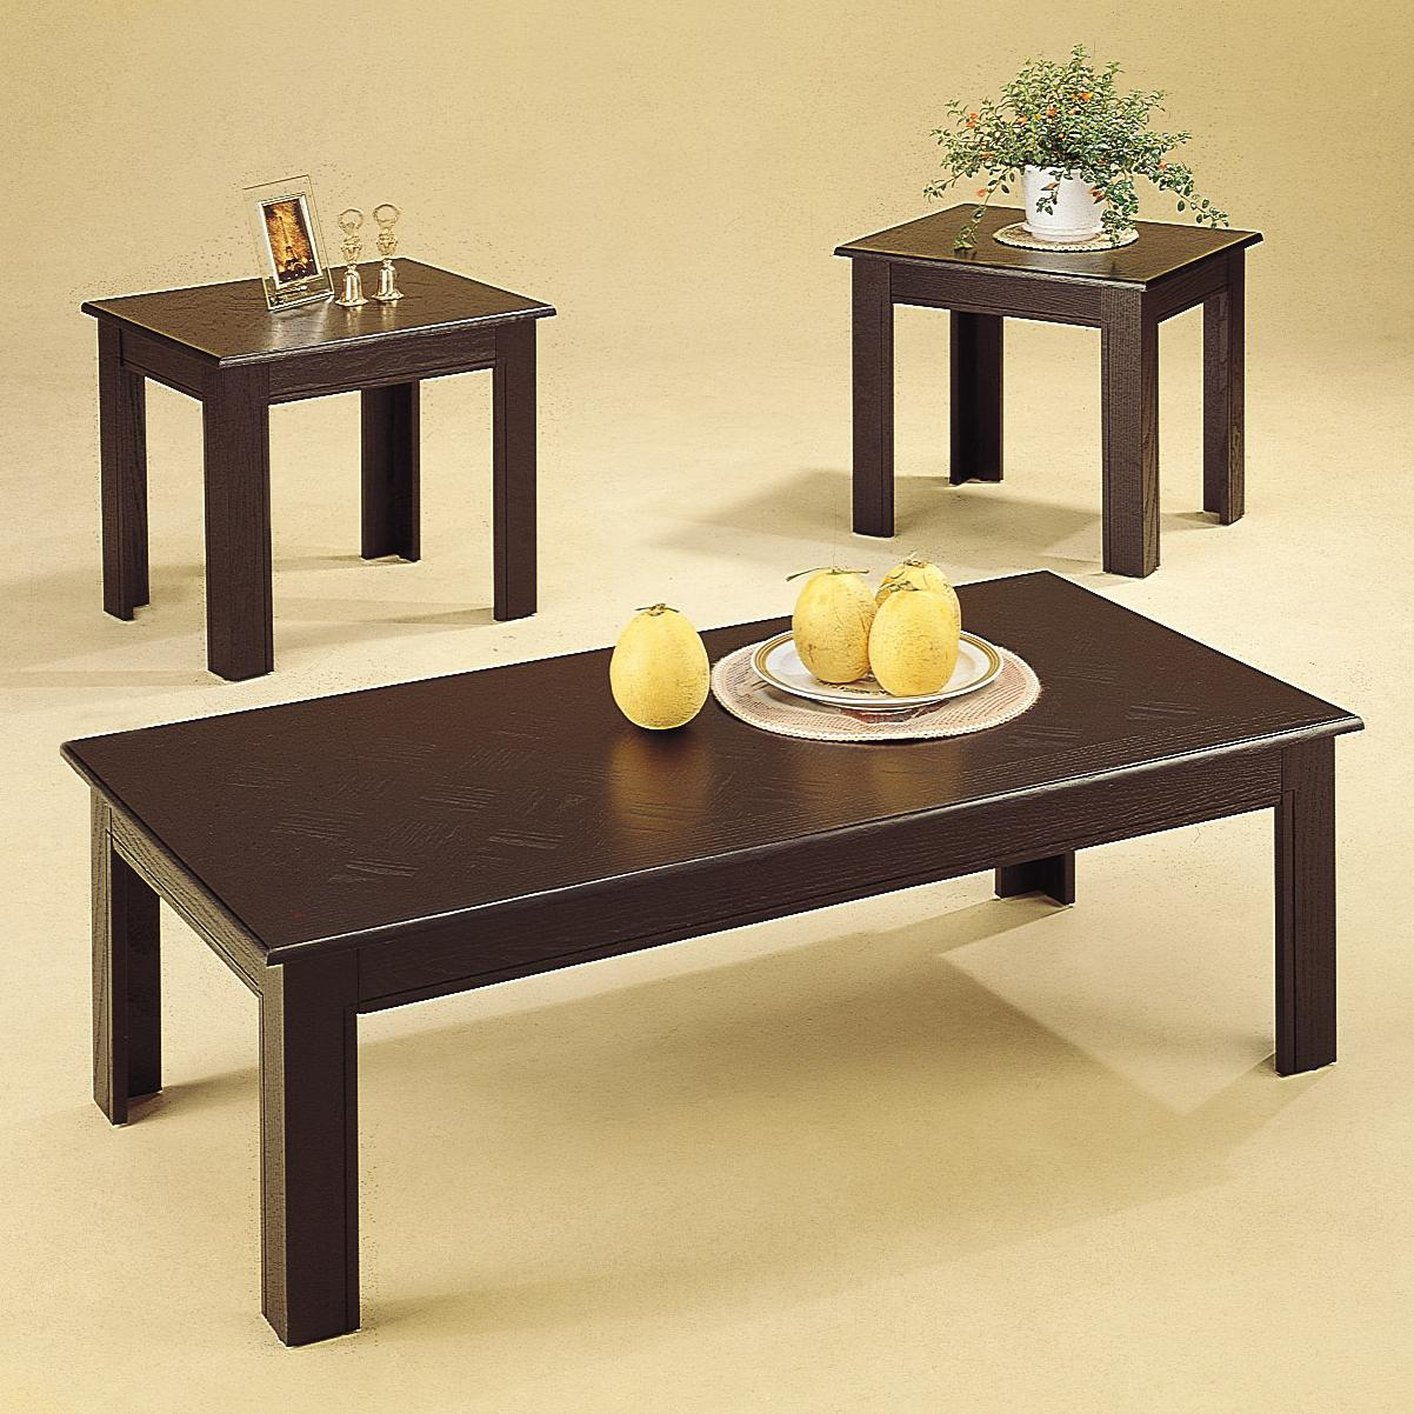 black wood coffee table set steal sofa furniture los dark and end tables angeles garden round plastic pallet ashley odd shaped low grey west elm brooklyn leather ethan allen